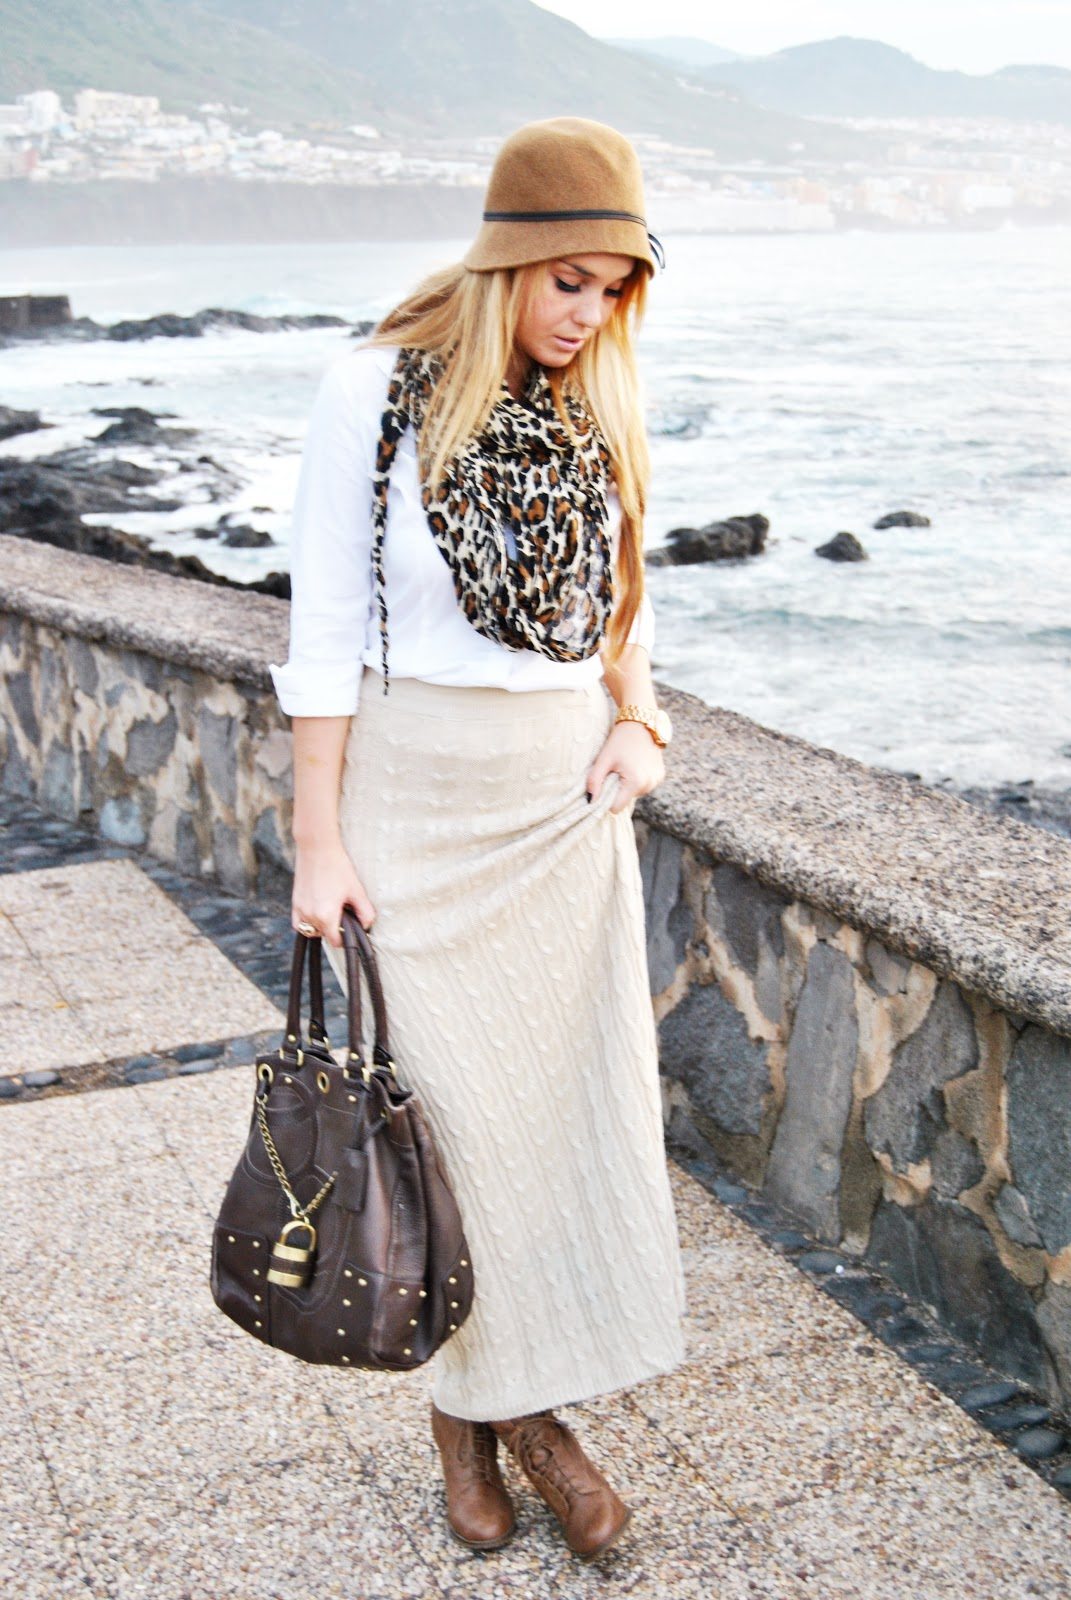 maxi skirt, hat, nery hdez, print animal , estampado leopardo